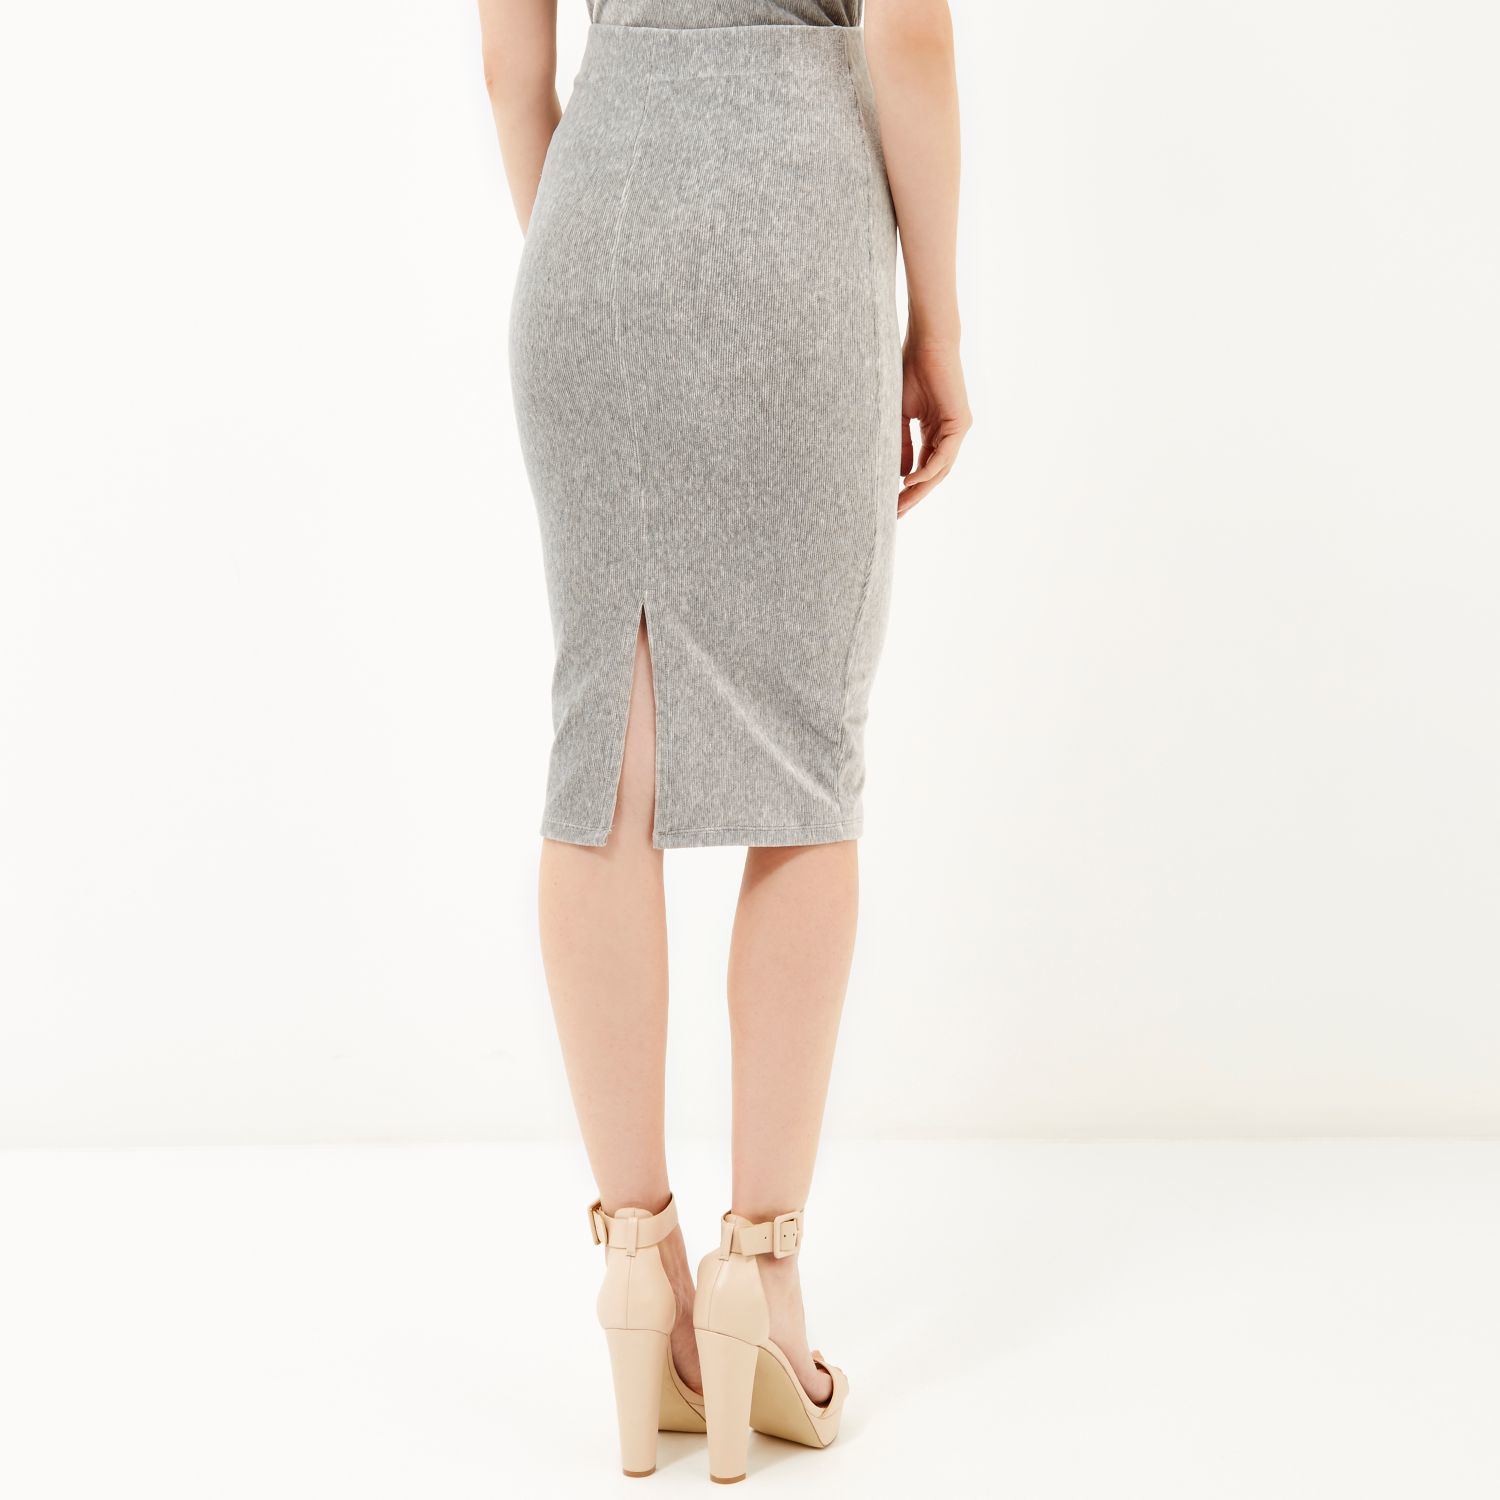 Light Grey Pencil Skirt - Dress Ala